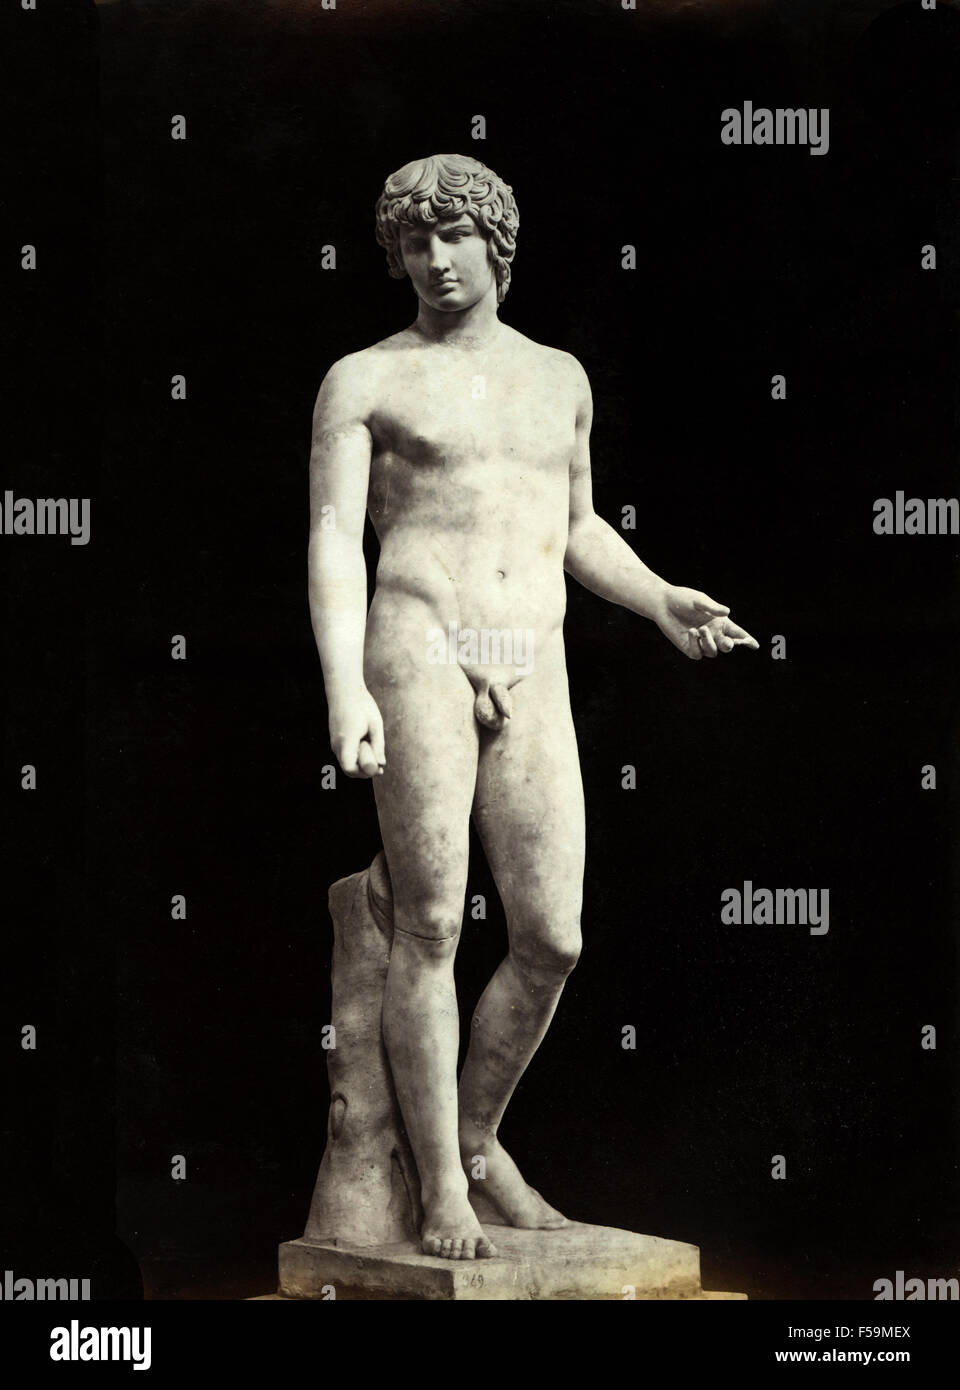 Statue of Antinous Farnese, Italy - Stock Image